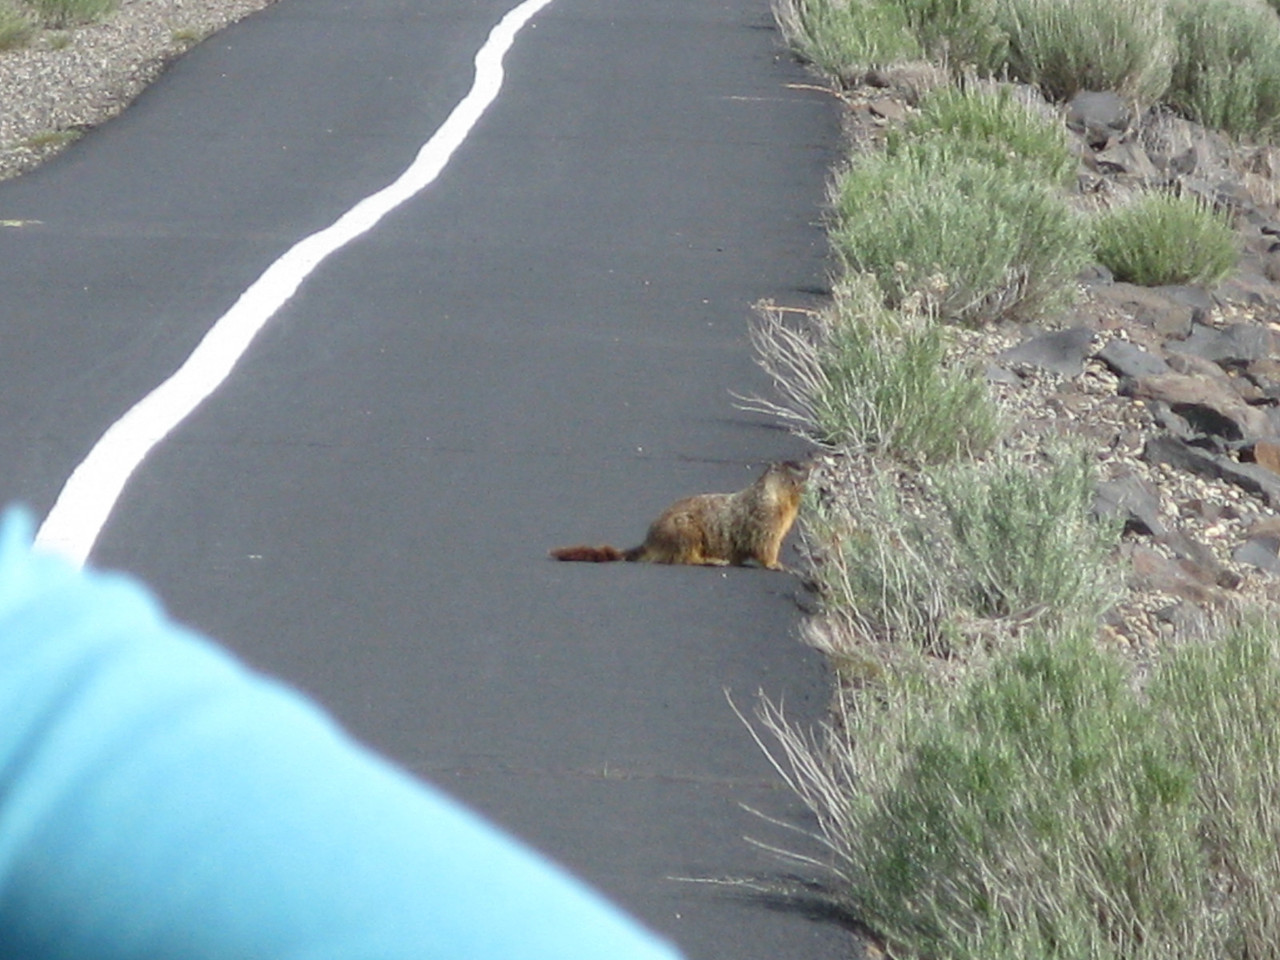 We saw this rodent on the path in front of us.  We are not sure what kind of animal he is, but we guessed a marmot.